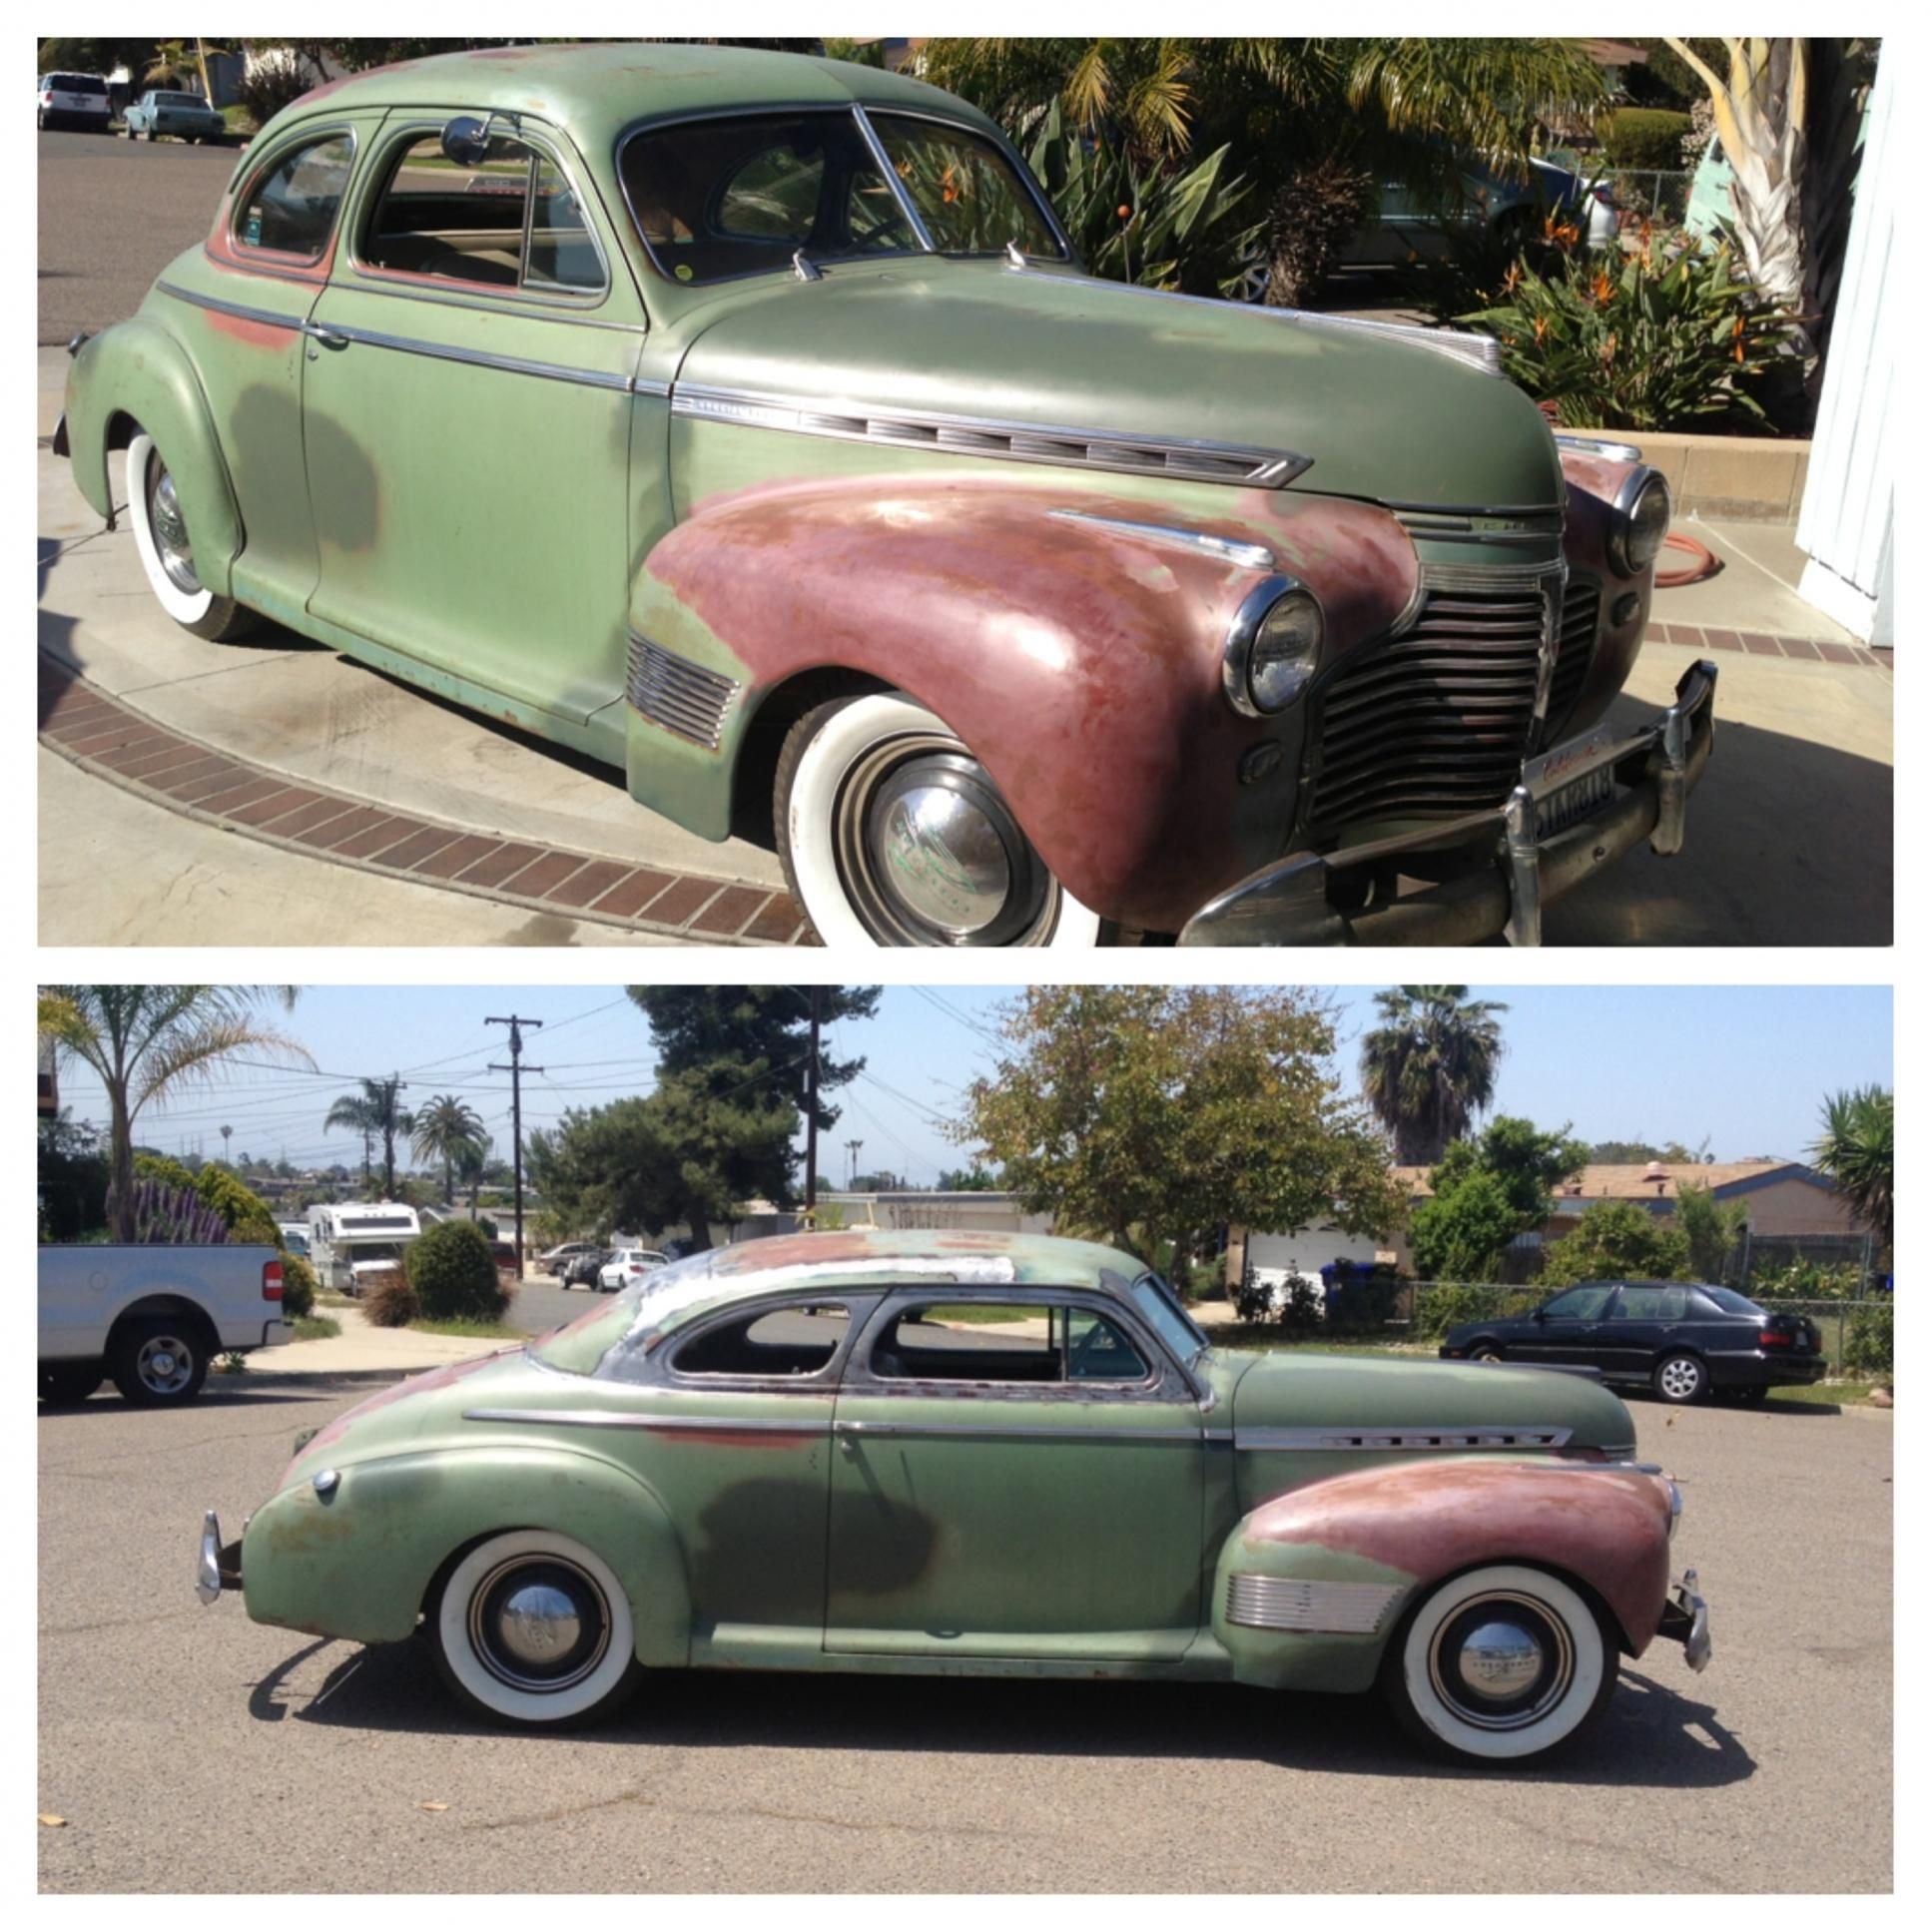 Ironclad S 1941 Chevy Custom Cars Lowrider Cars Chevy